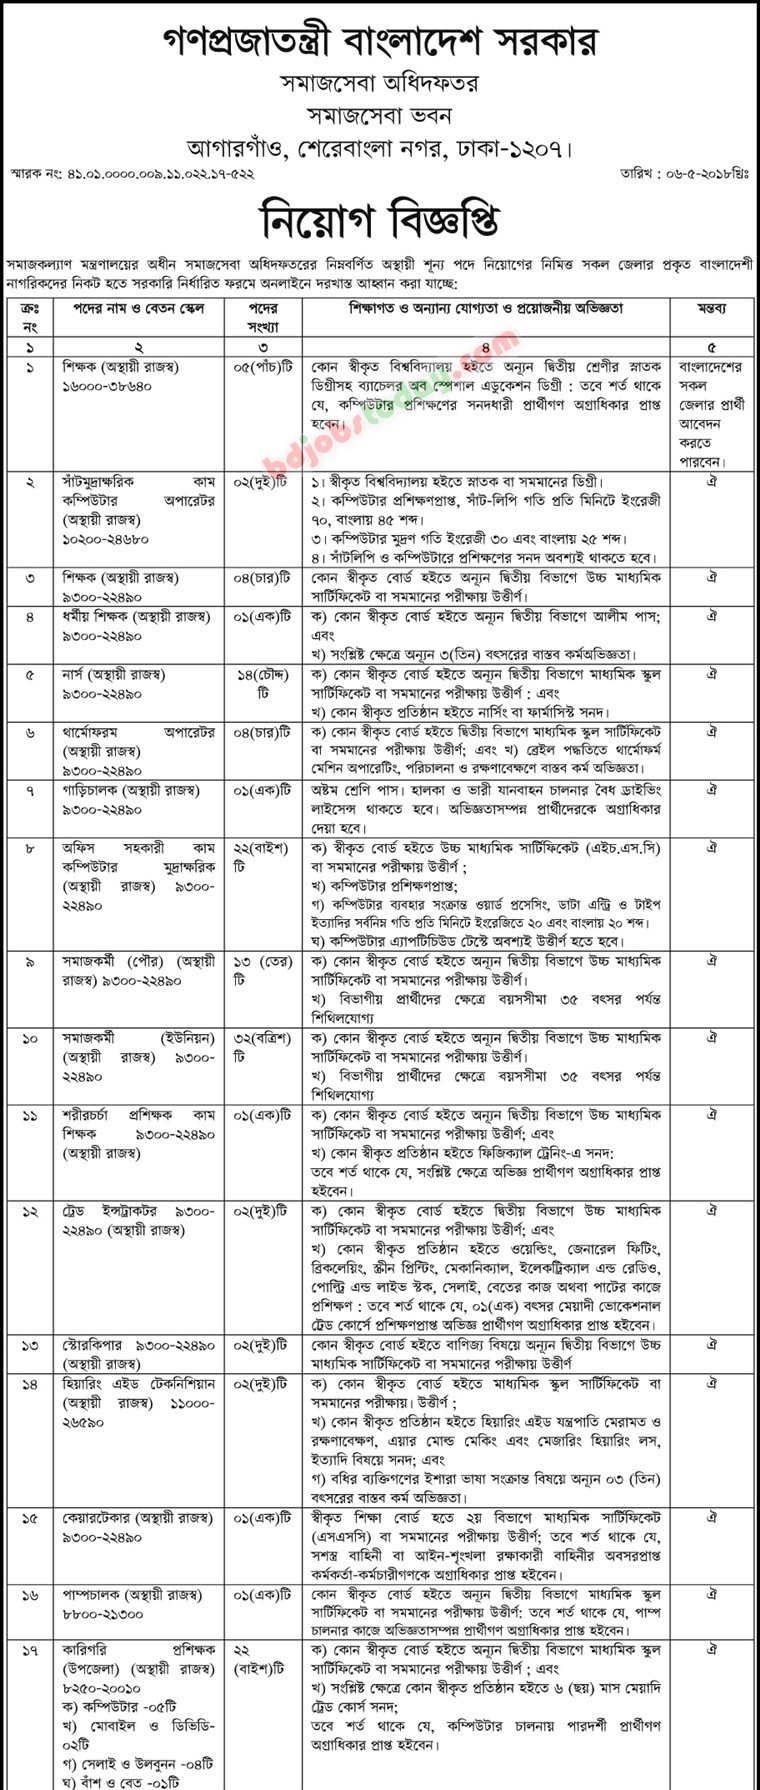 Department of Social Services jobs